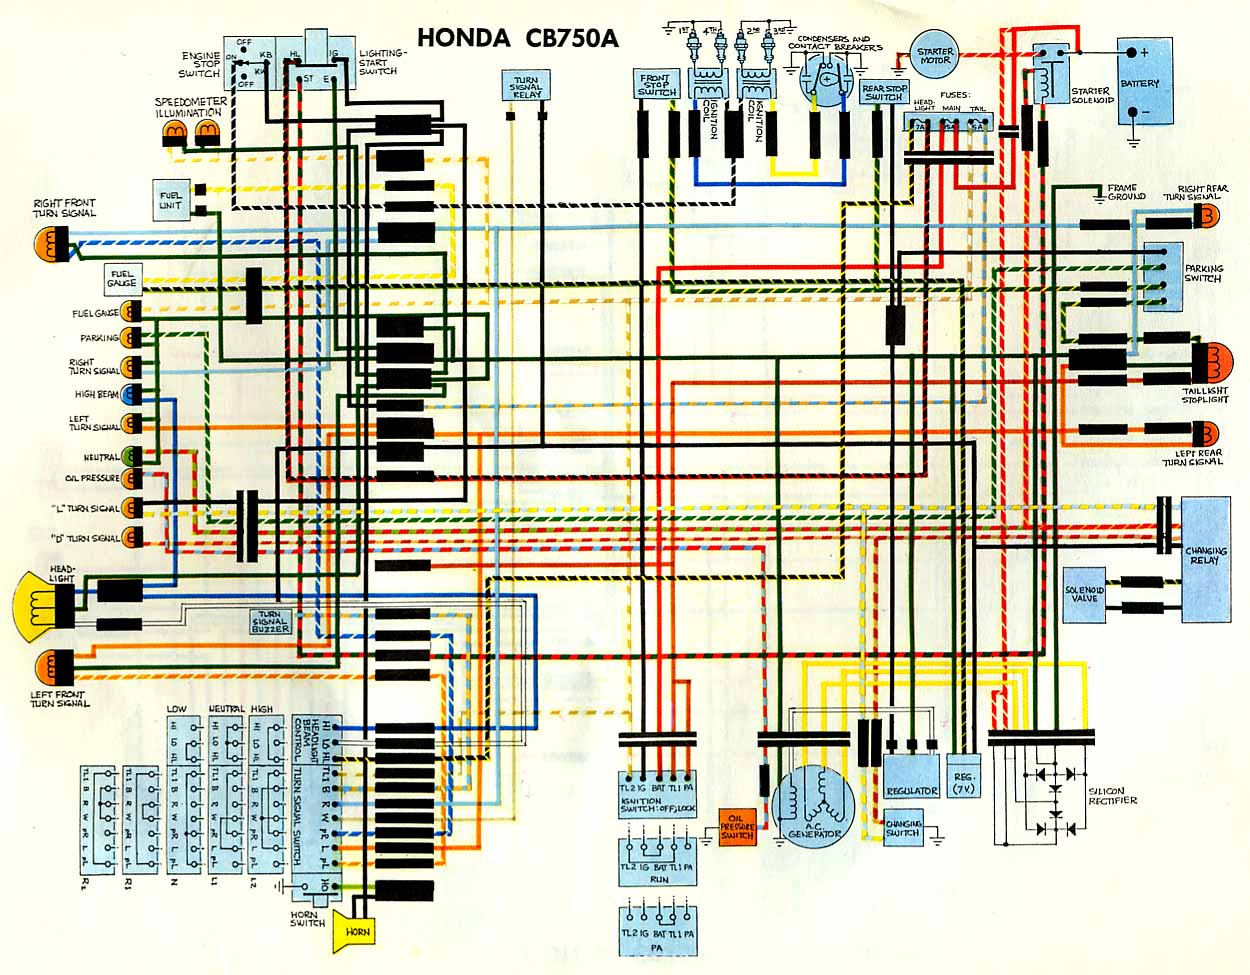 Honda Cb750 K2 Wiring Diagram Libraries Furthermore Volt Meter With Shunt Todayswiring Diagrams 77